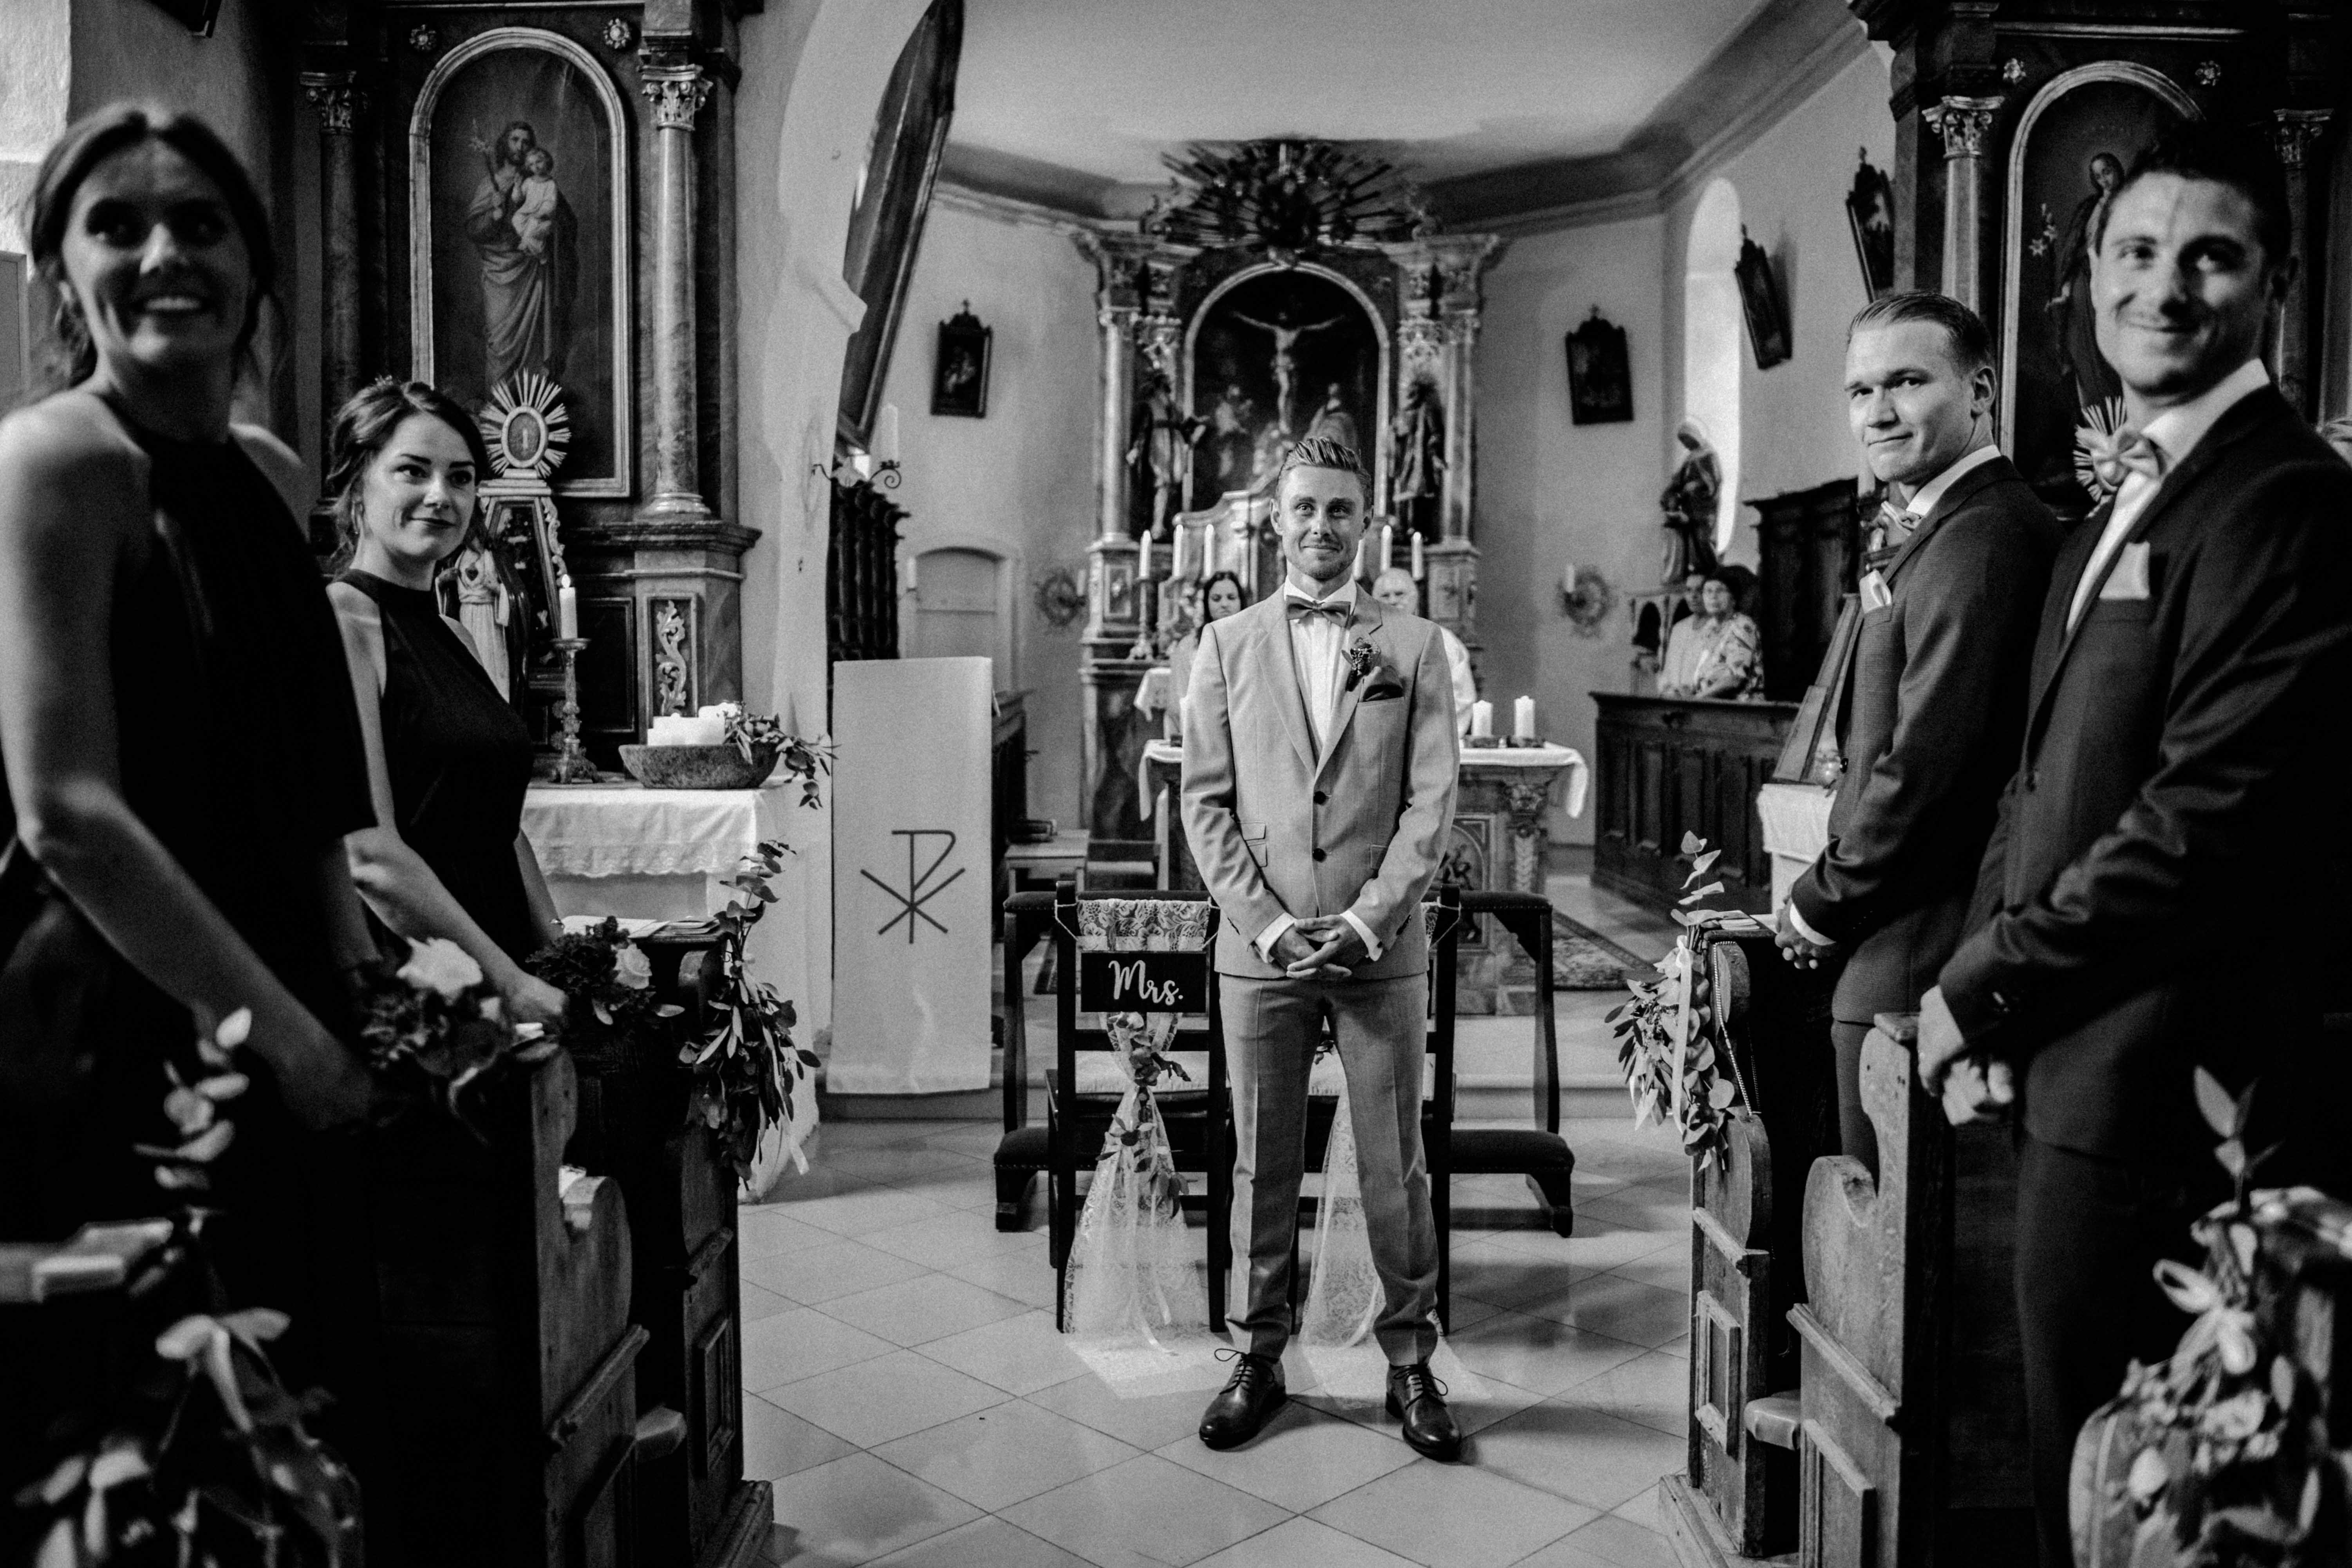 aisle anspannung sonja poehlmann photography couples muenchen bayern